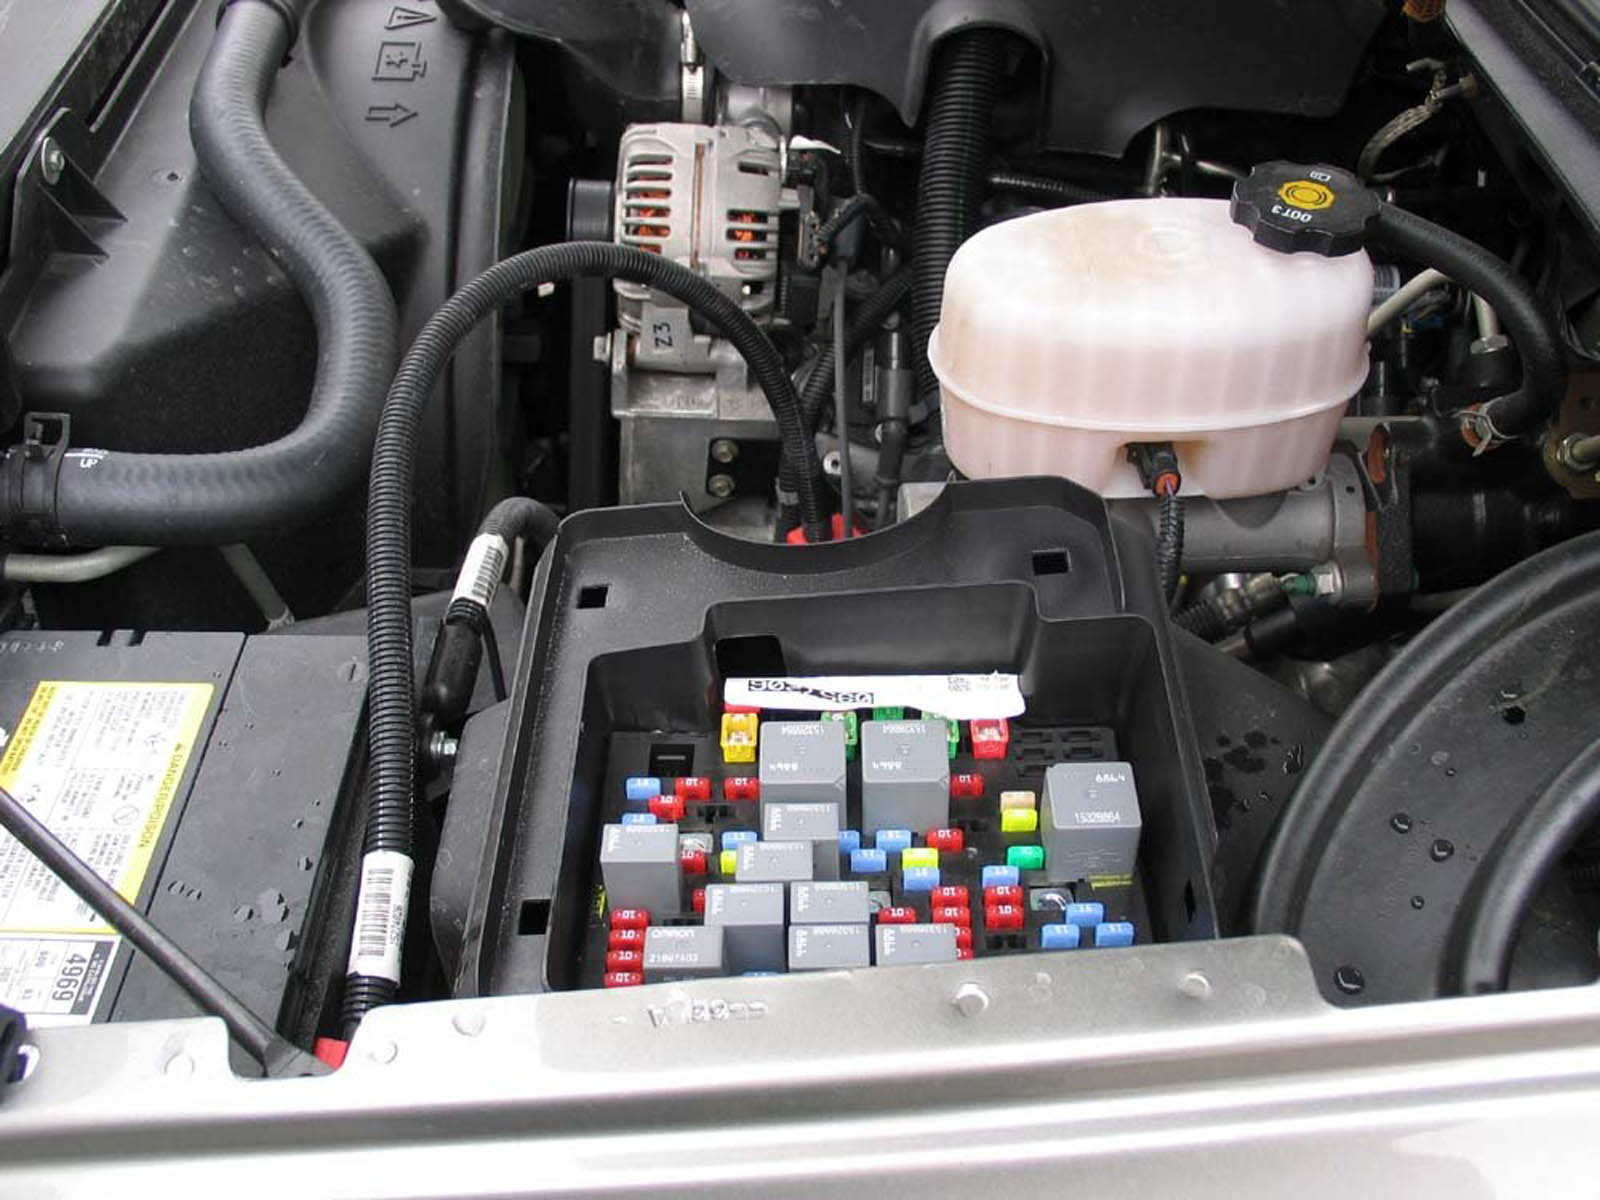 MMMay 27 Fuse Box 04 69845 chevrolet silverado gmt800 1999 2006 fuse box diagram chevroletforum 2005 Chevy Silverado Fuse Box Diagram at creativeand.co